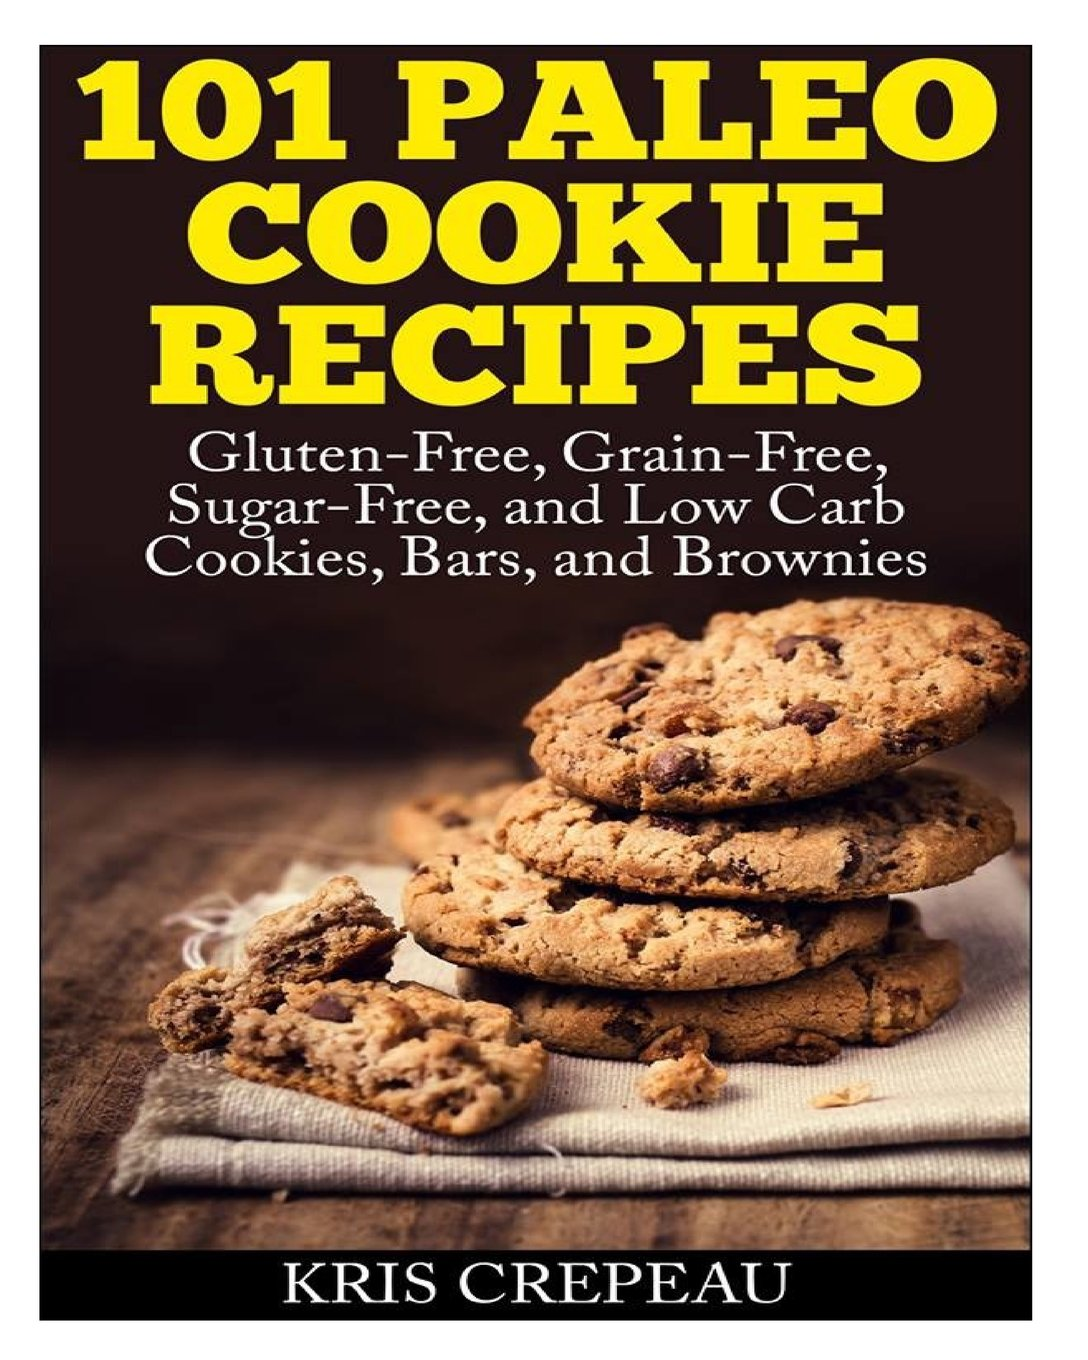 101 Paleo Cookie Recipes: Gluten-Free, Grain-Free, Sugar-Free, and Low Carb  Cookies, Bars, and Brownies: Kris Crepeau: 9781495481031: Amazon.com: Books